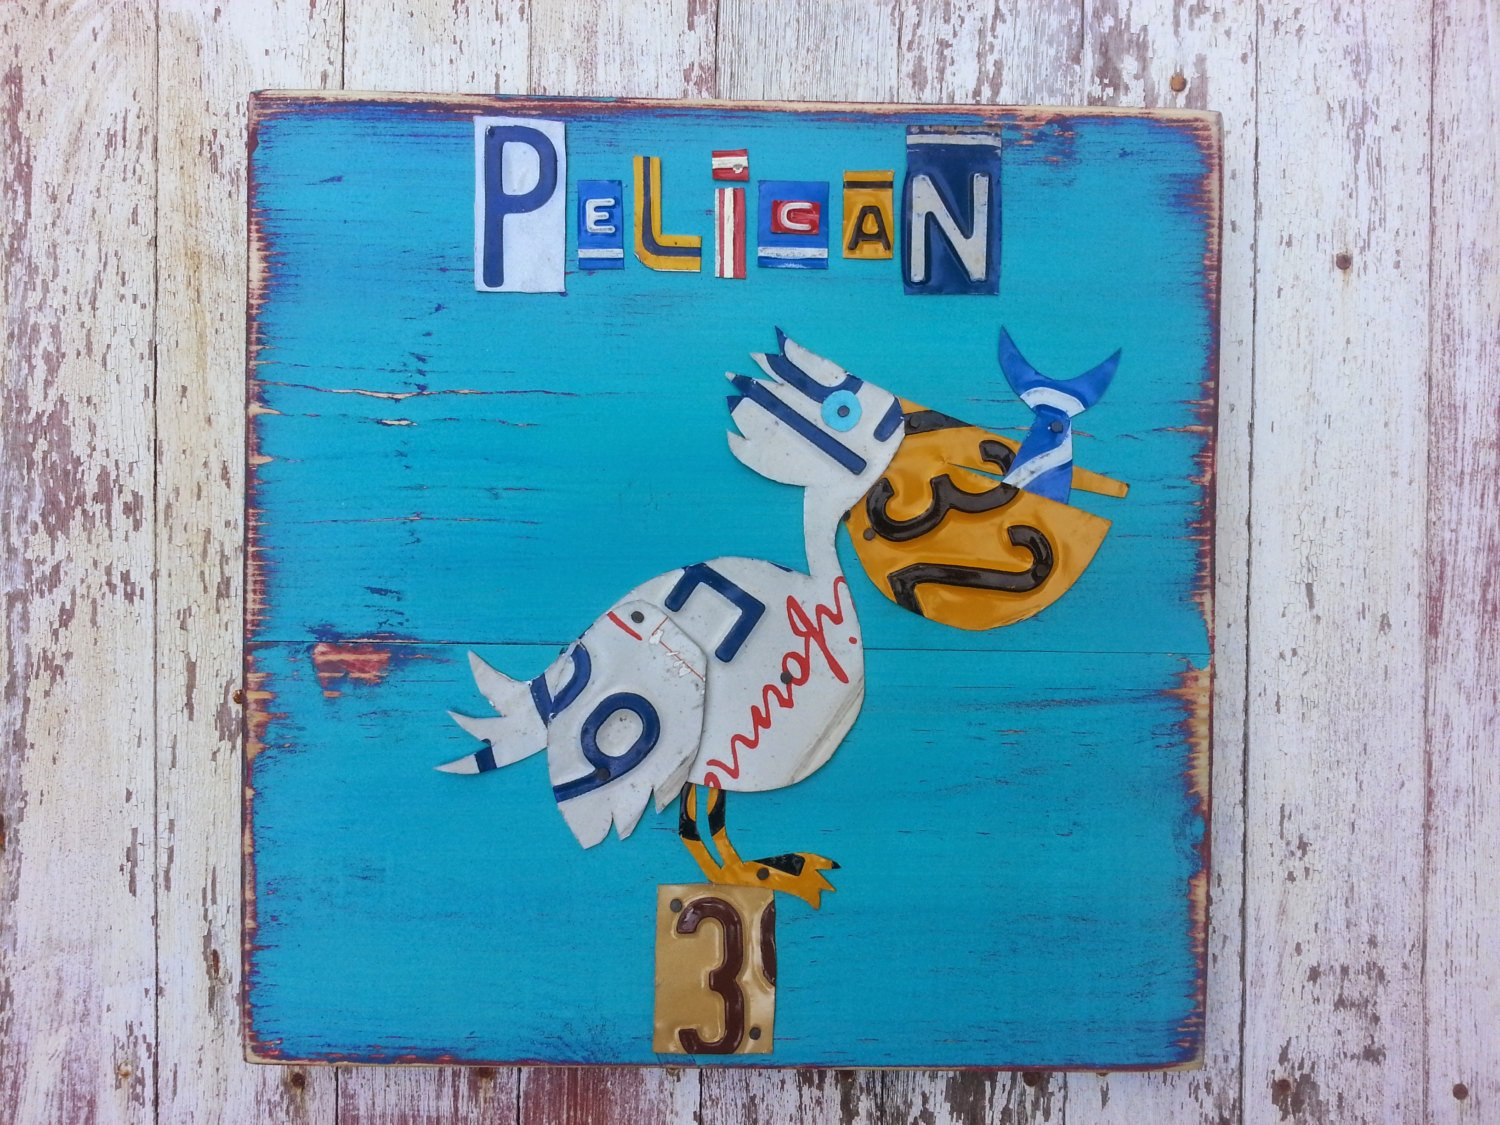 Recycled Art Co. License Plate Pelican Art